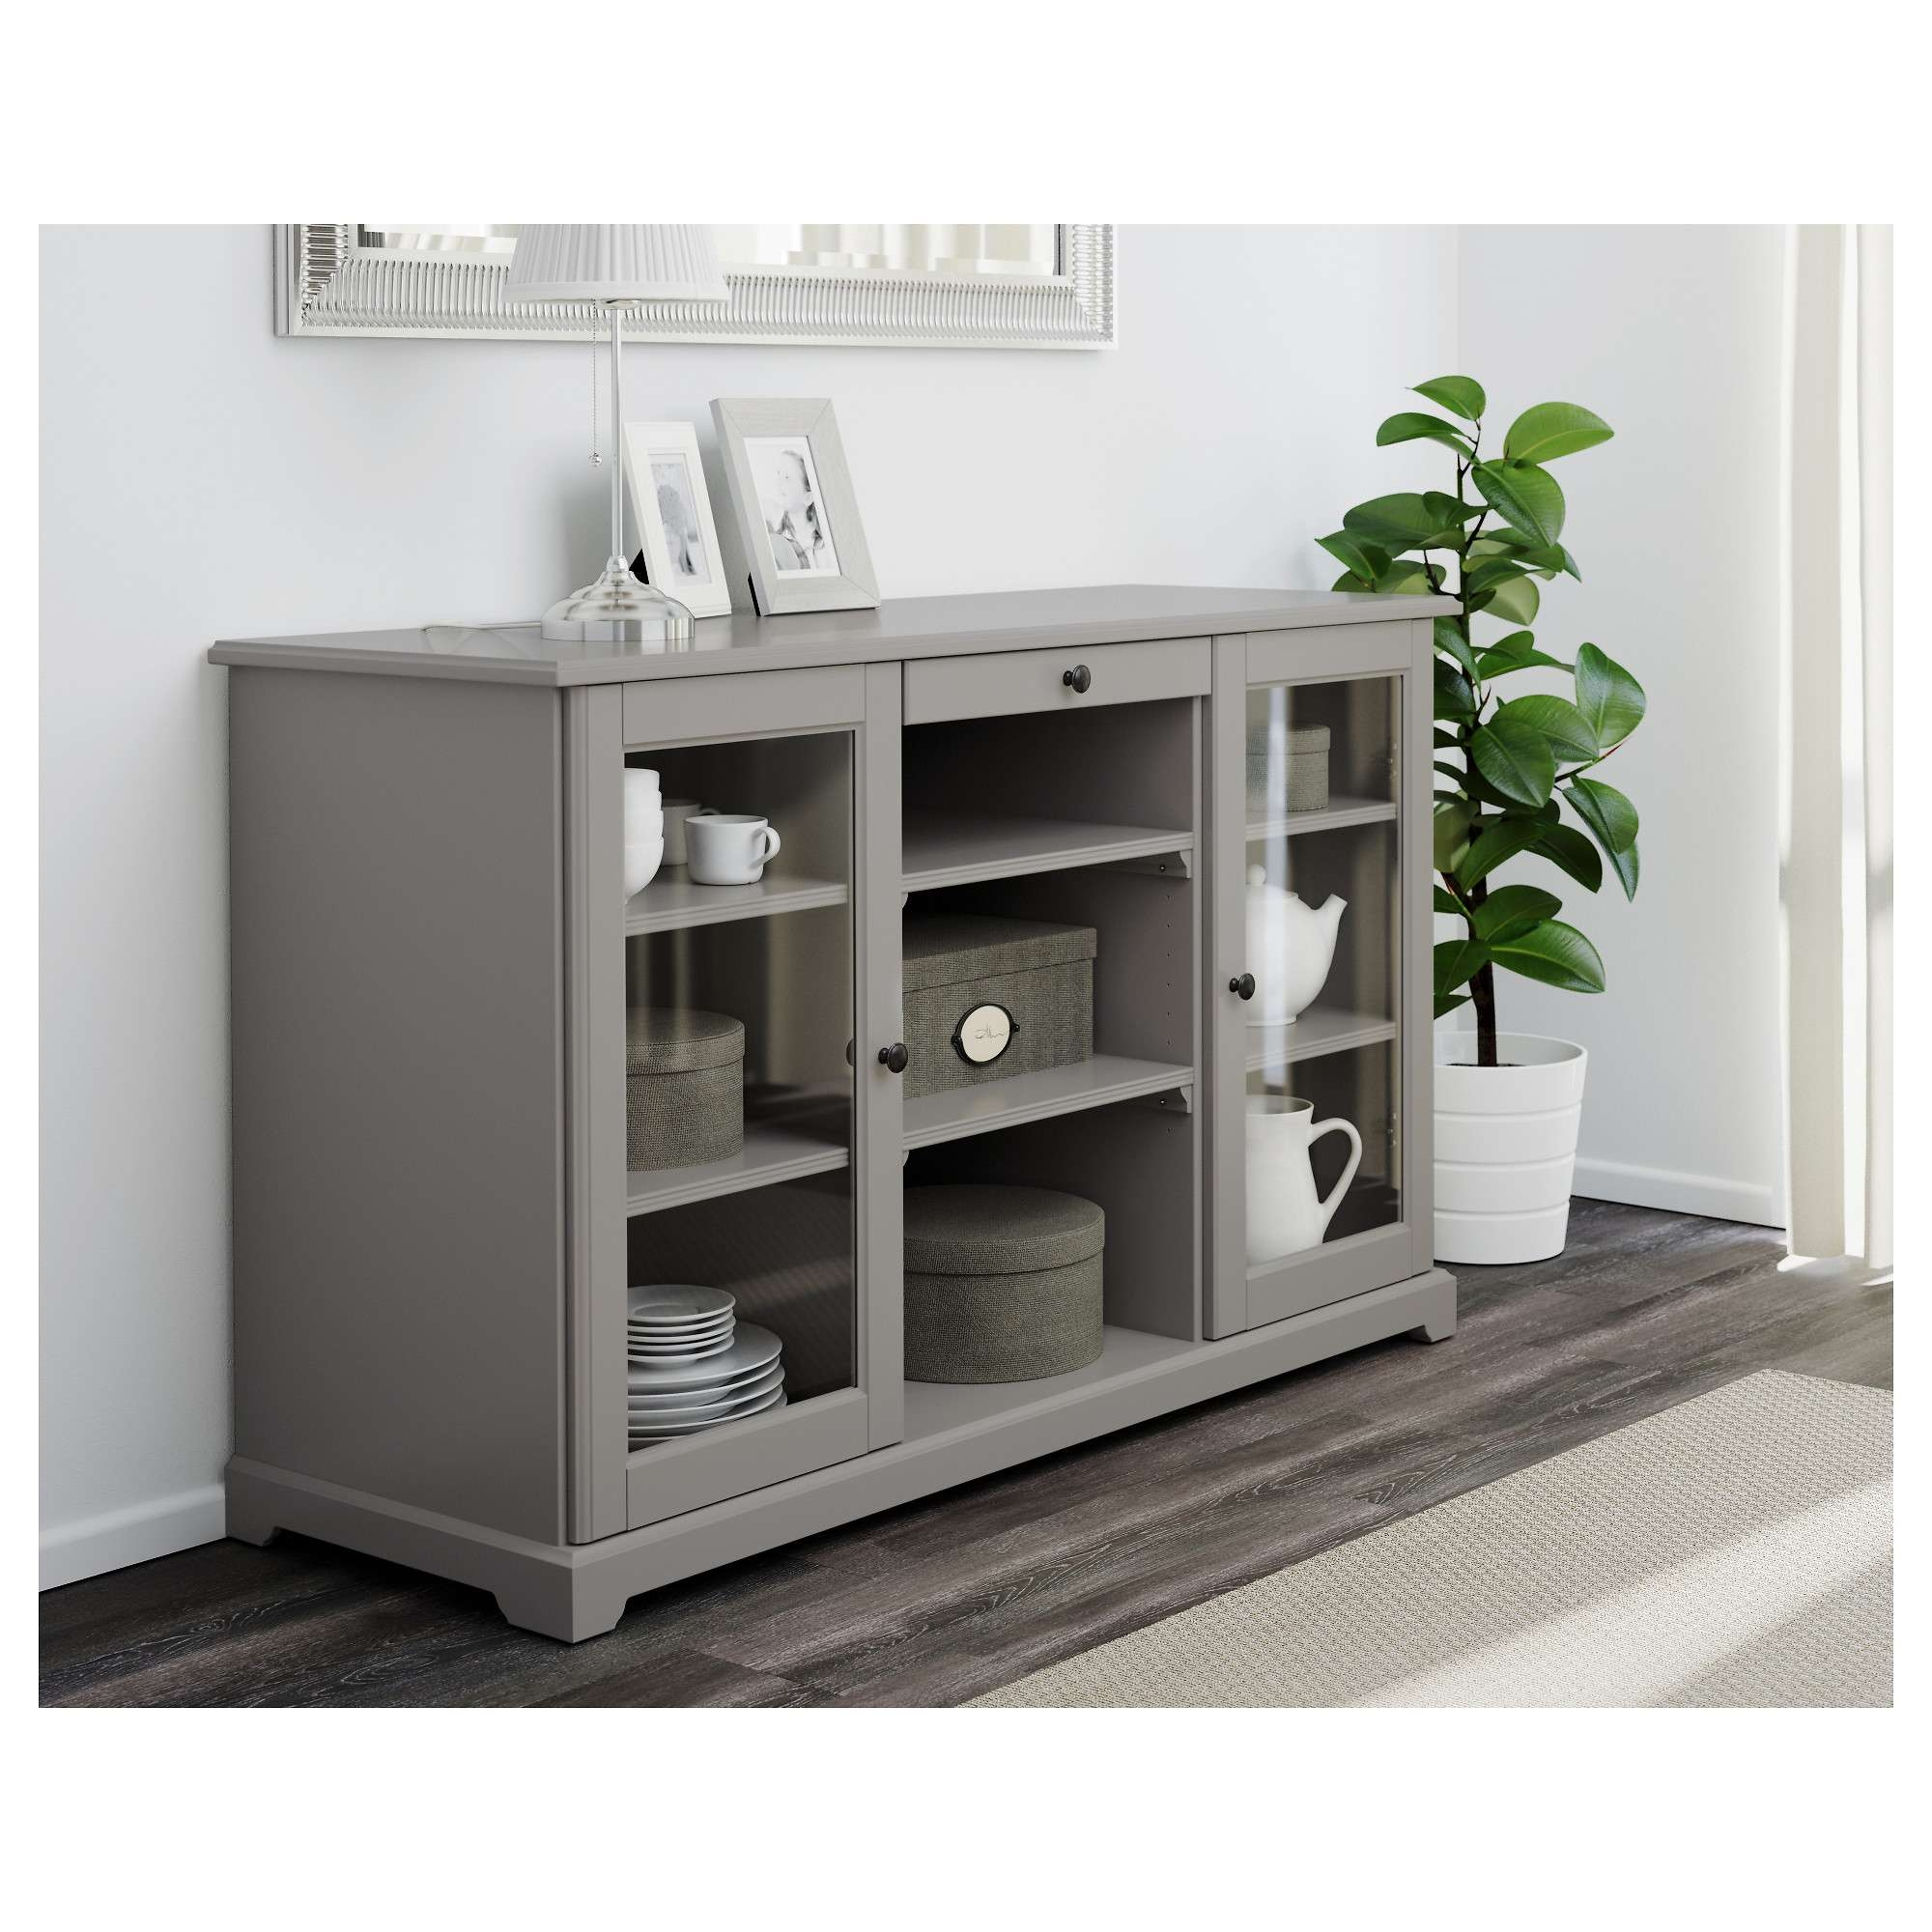 Liatorp Sideboard – White – Ikea Throughout Liatorp Sideboards (View 16 of 20)